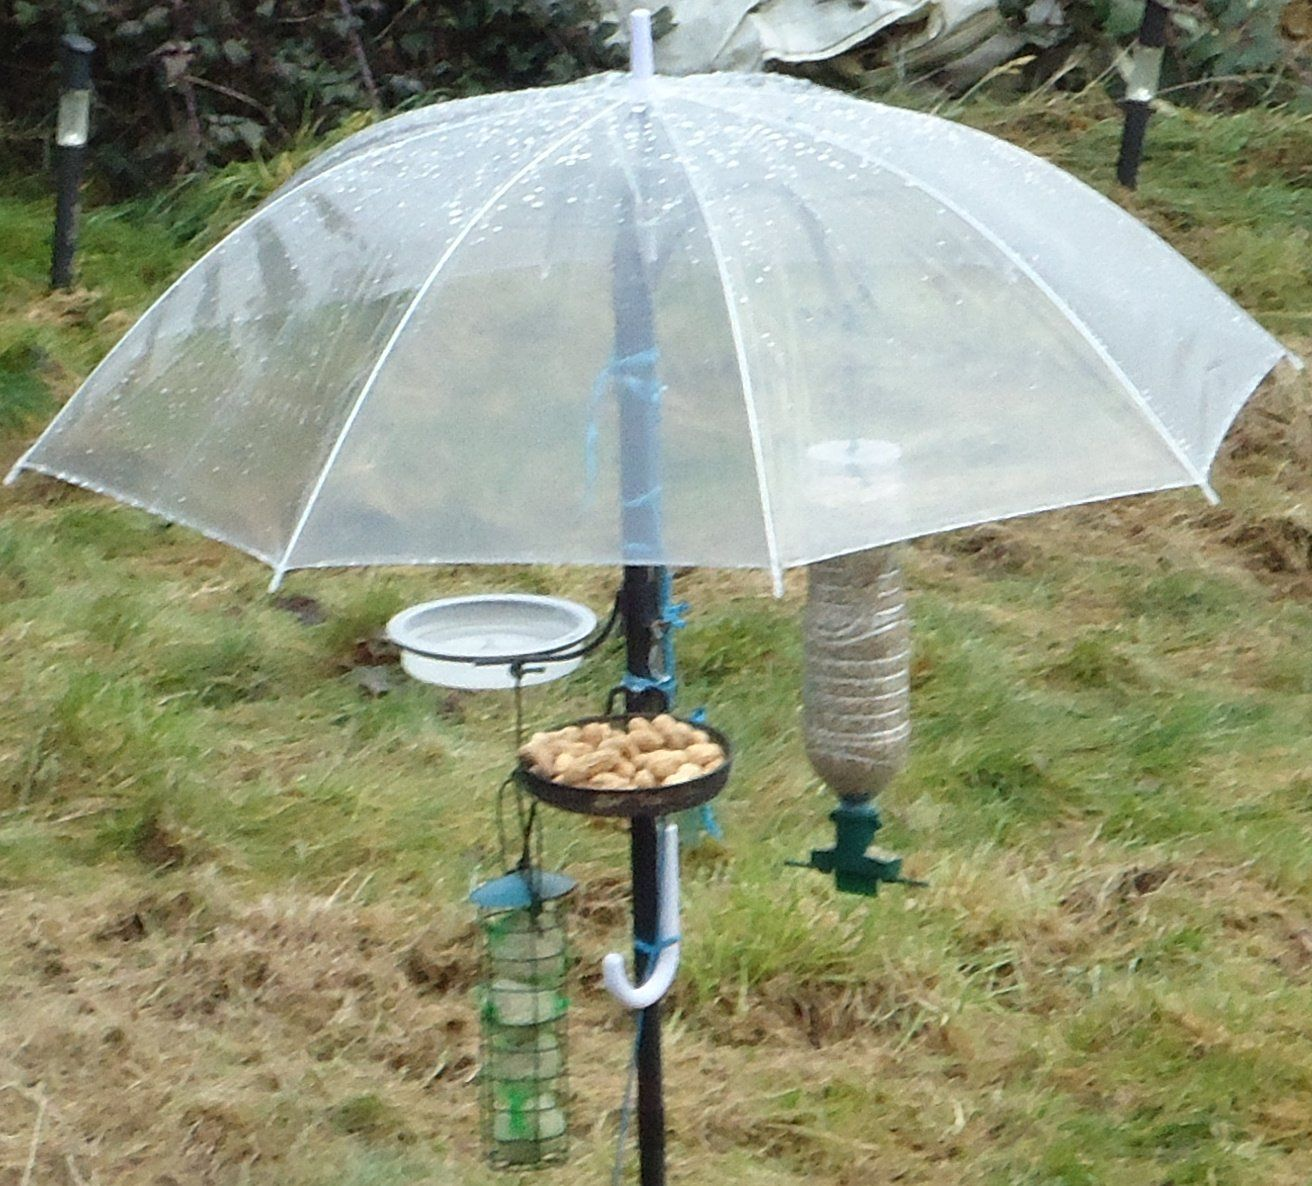 Patio Umbrella Flying Away: Clever Umbrella Bird Feeder: This Keeps Seed Dry, Protects